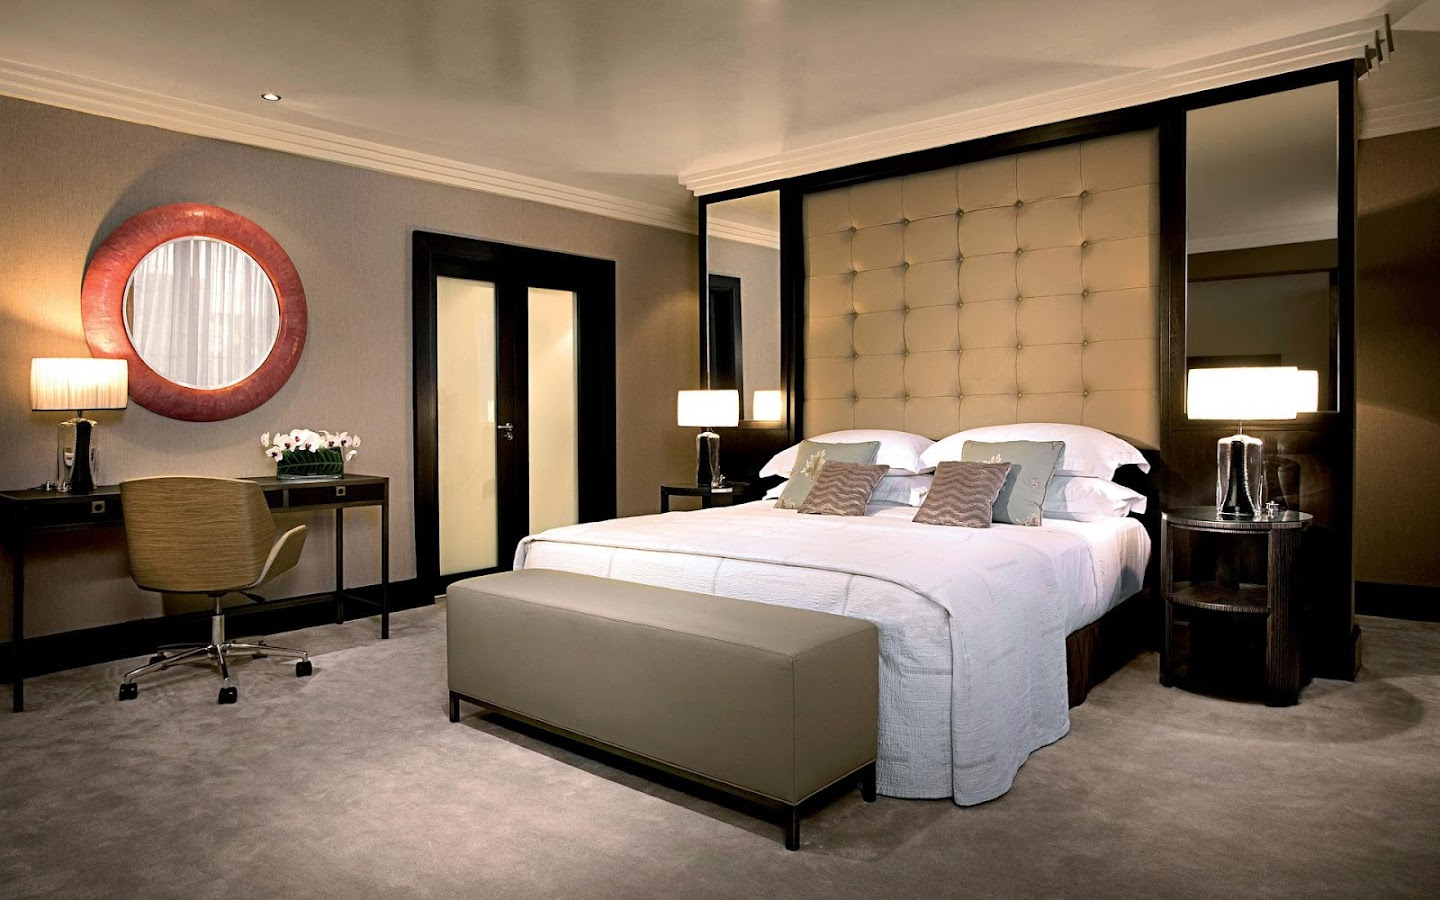 Bedroom Decoration Bedroom Decoration Designs 2017 Android Apps On Google Play